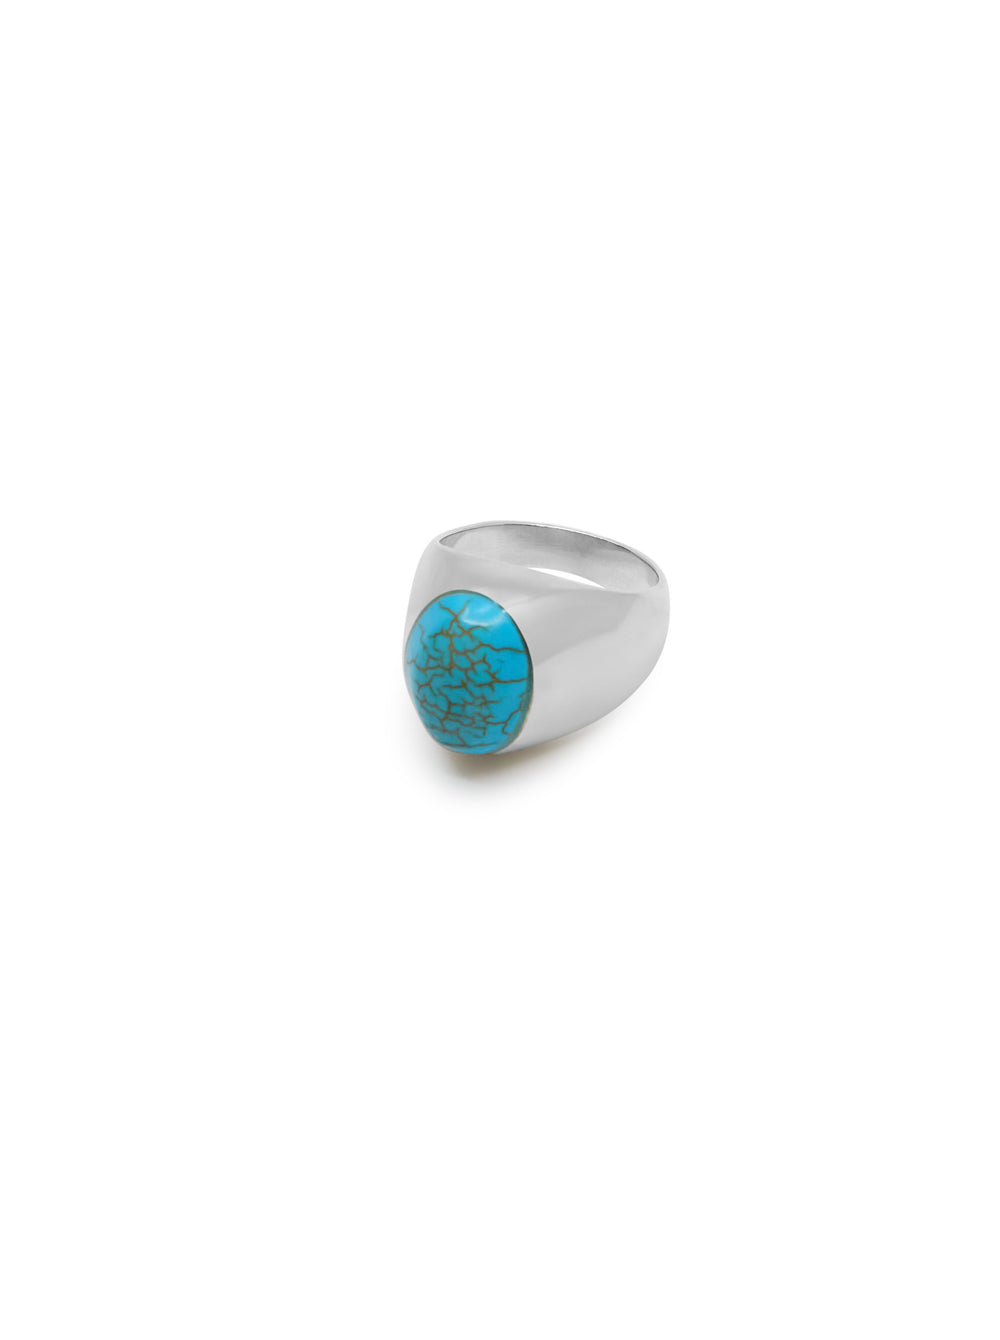 THE JUSTIN TURQUOISE RING (ALEXANDER ROTH X THE M JEWELERS)